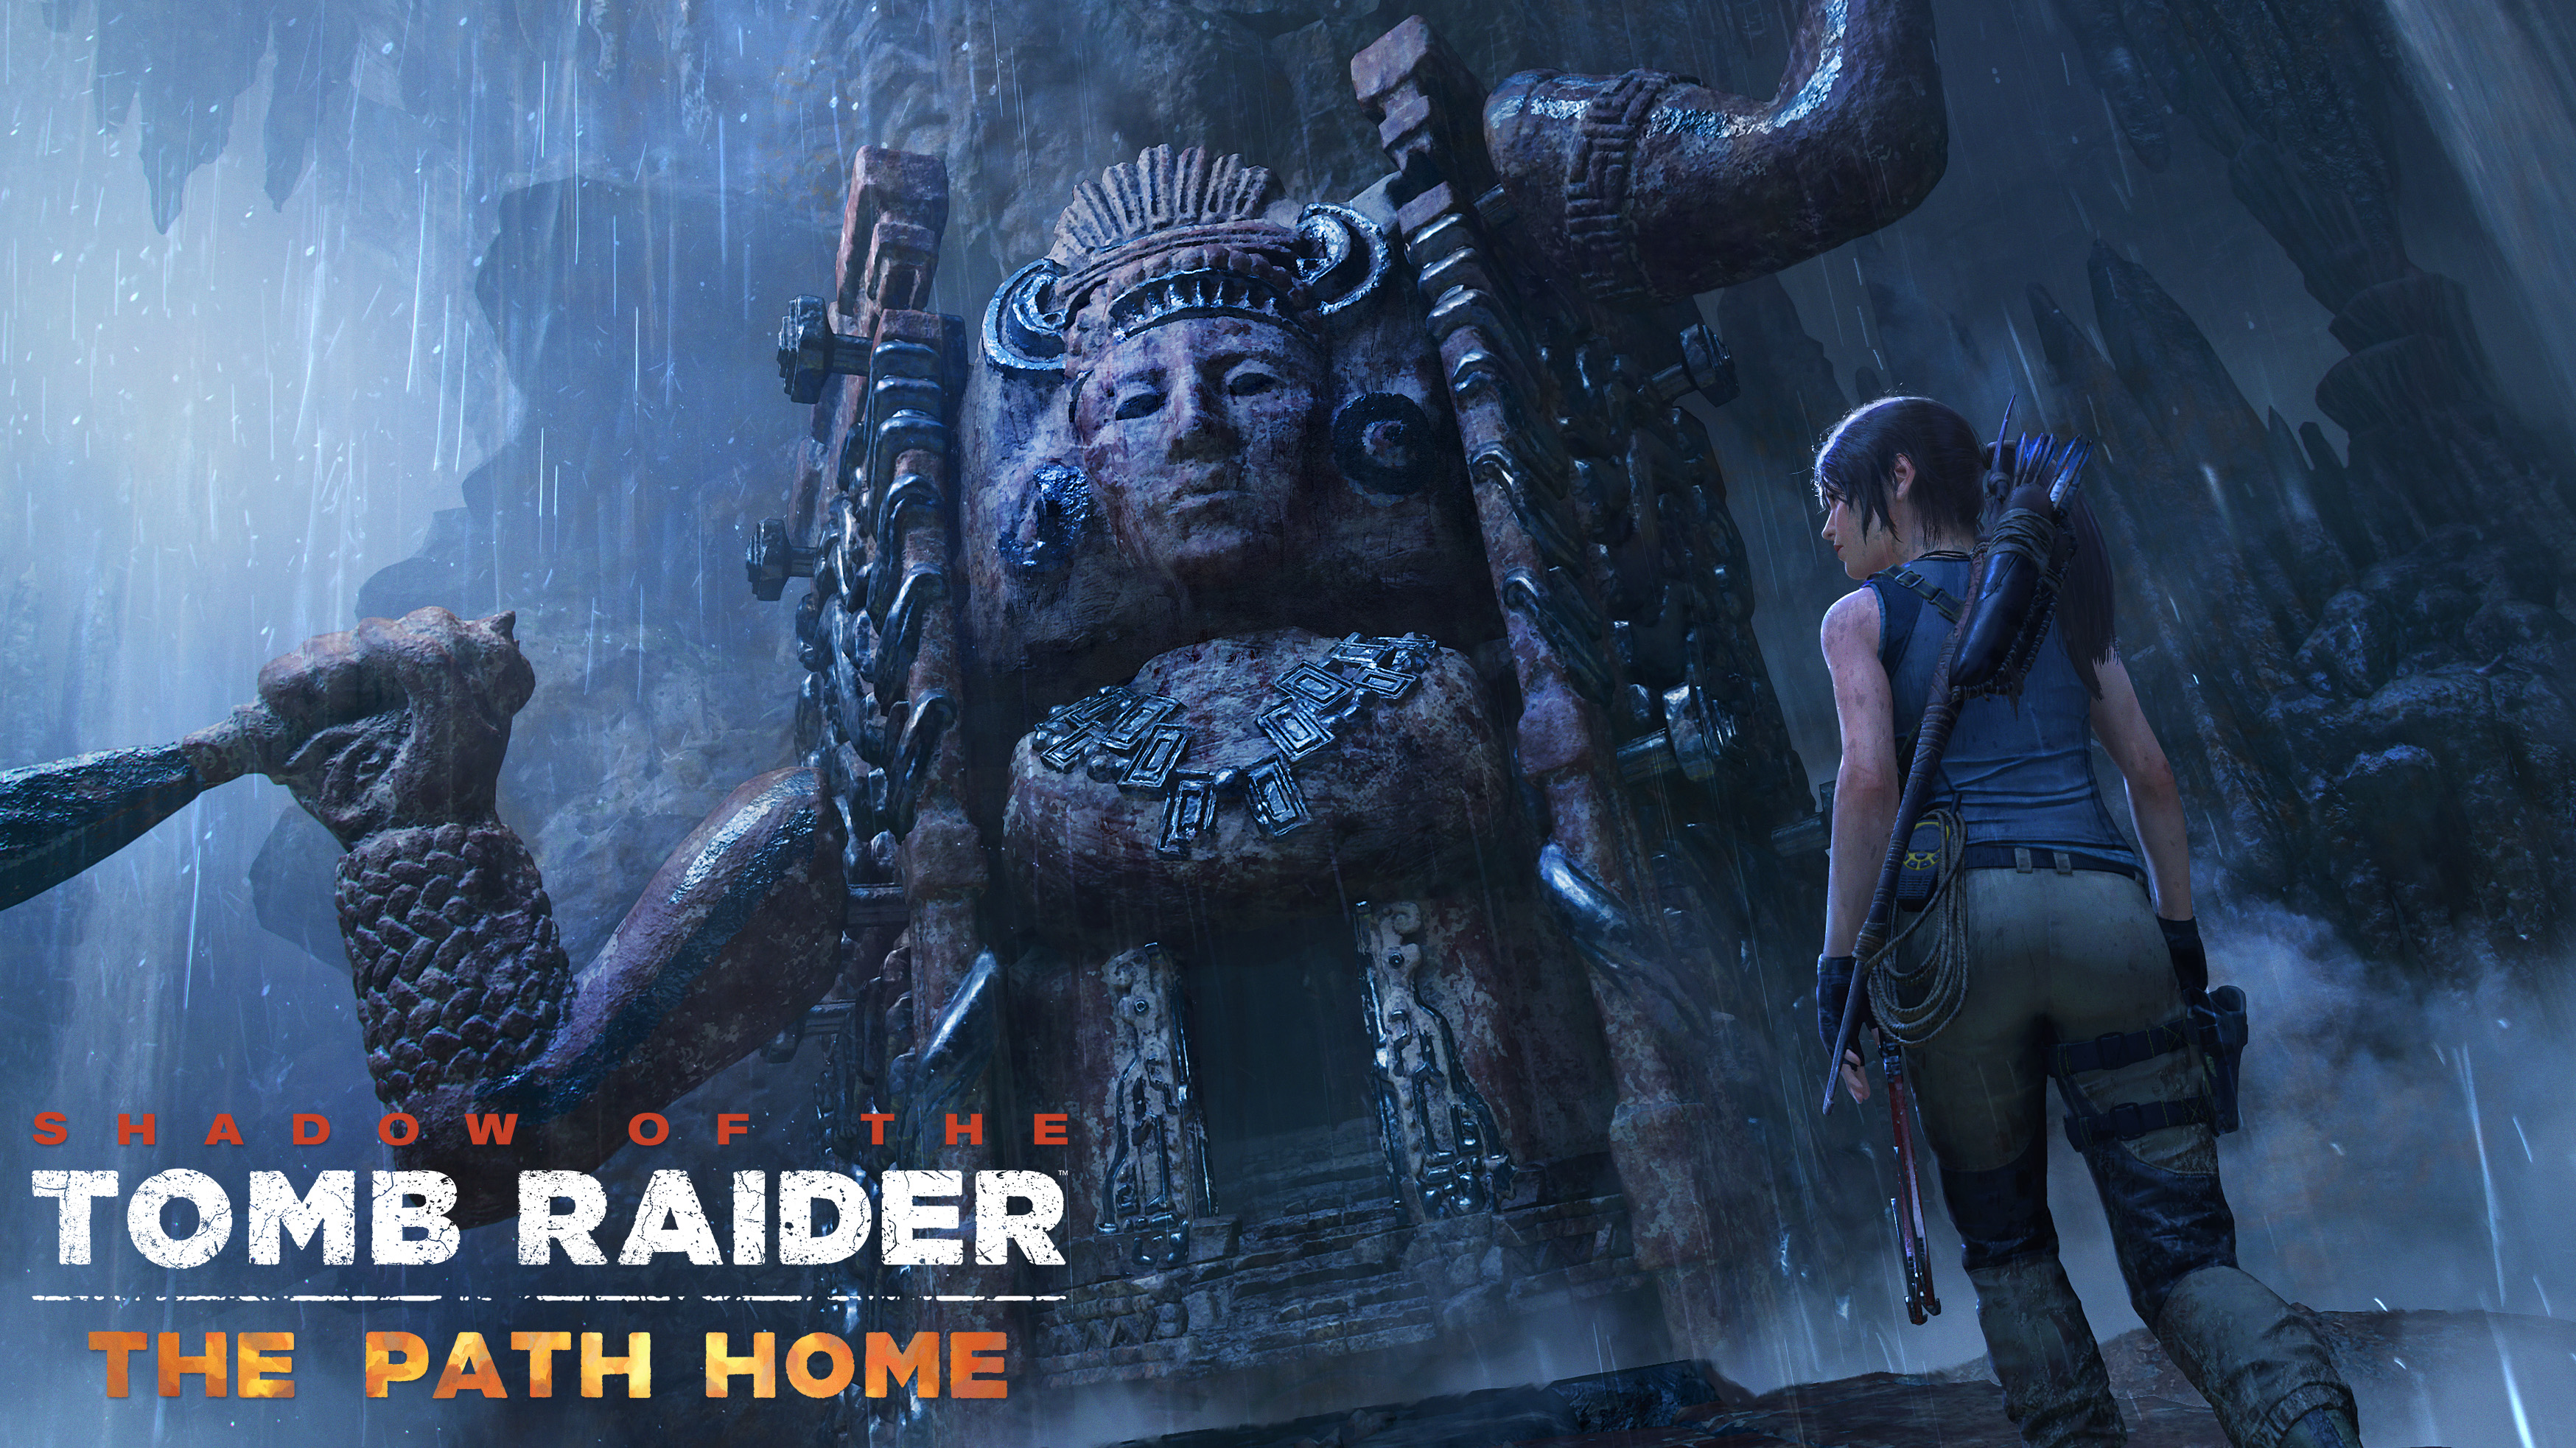 Shadow of the Tomb Raider si conclude con THE PATH HOME